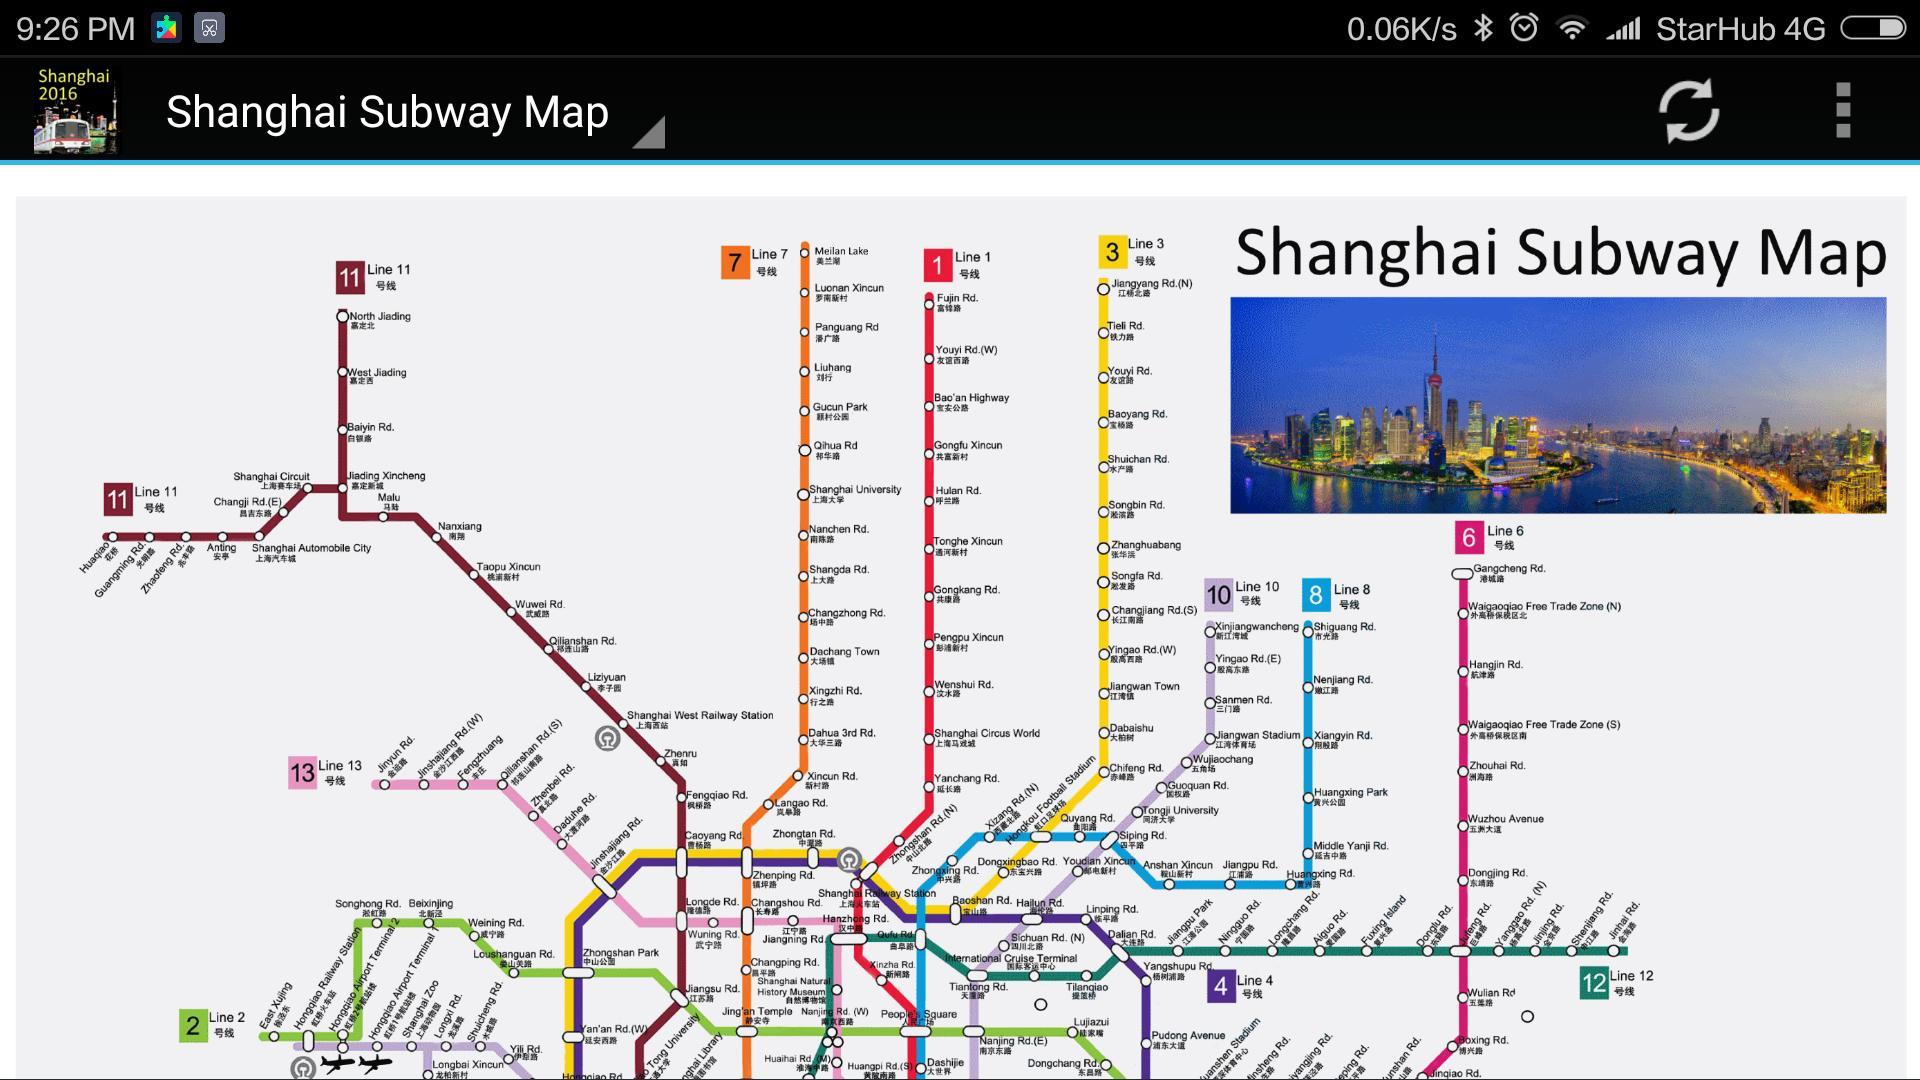 Subway Map Of Shanghai.Shanghai Subway Metro Map 2019 For Android Apk Download